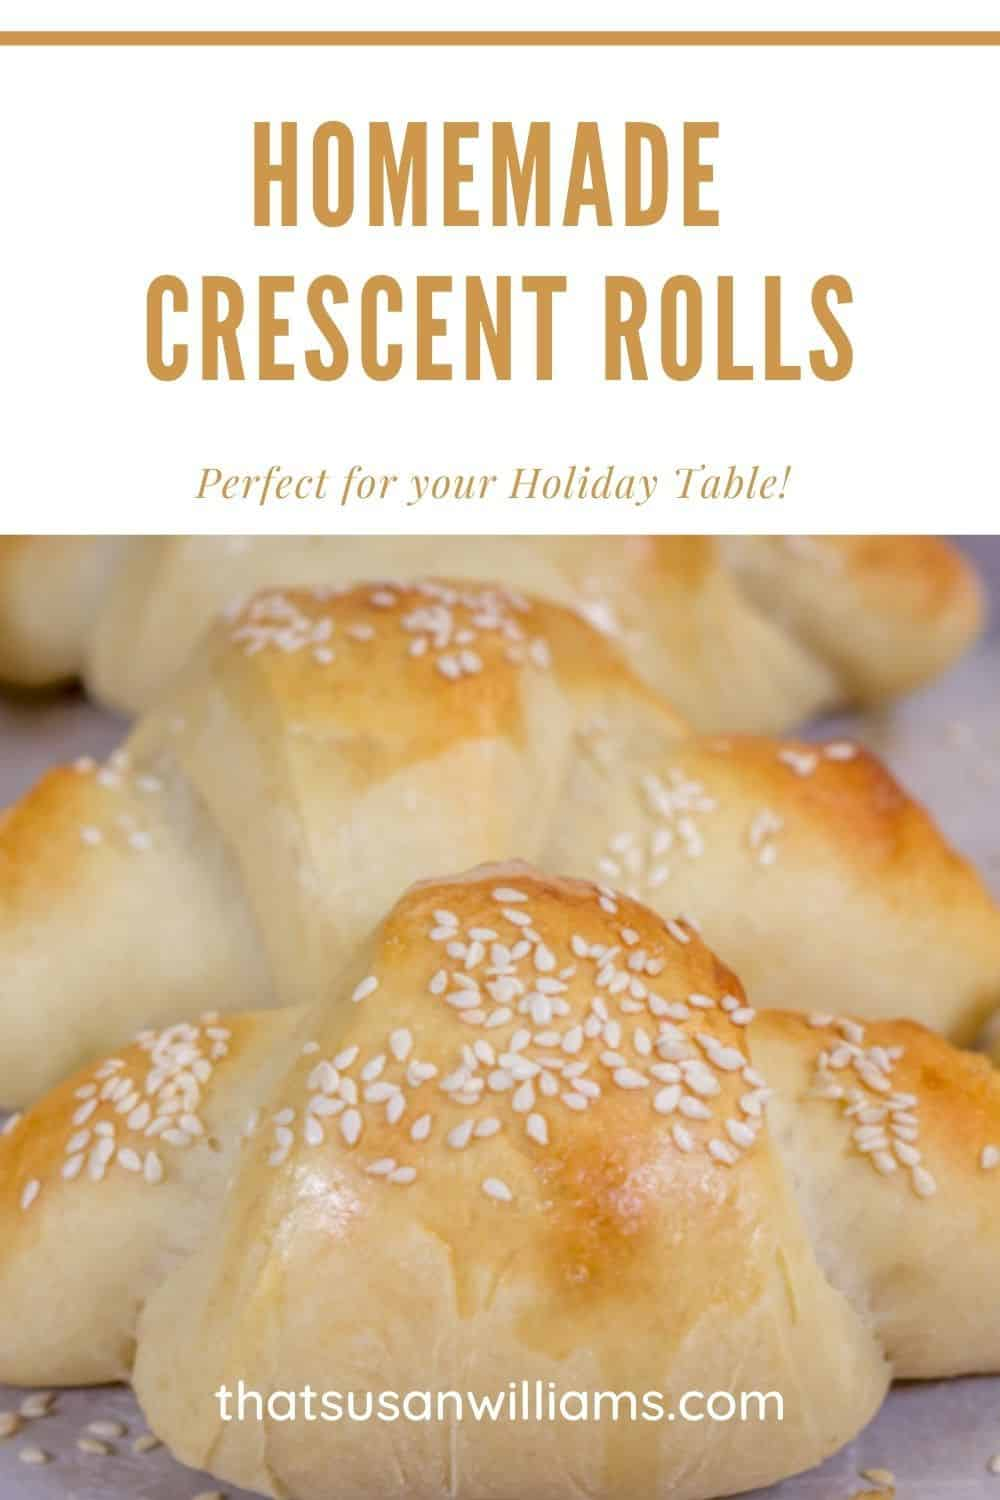 Homemade Crescent Rolls are perfect for your holiday table.